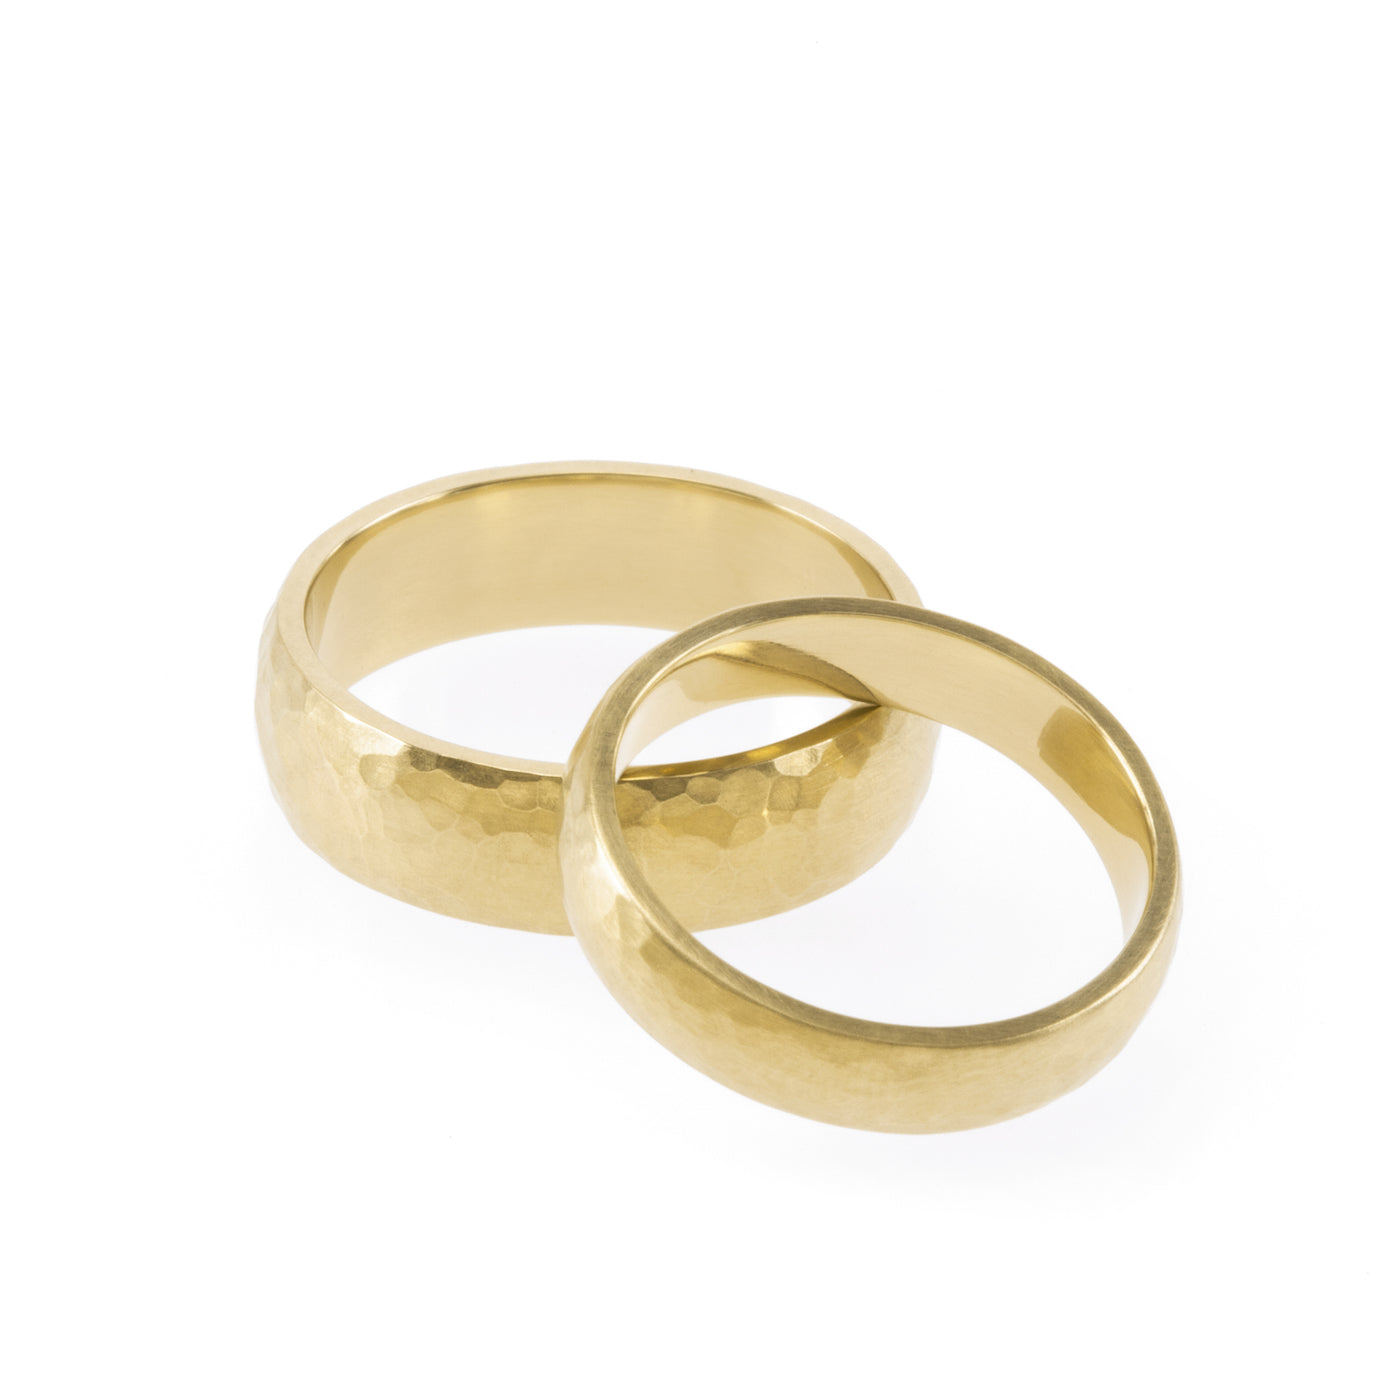 Ethical gold rings. These minimalist Hammered Wedding Bands are handmade in Cape Town in recycled gold from e-waste.